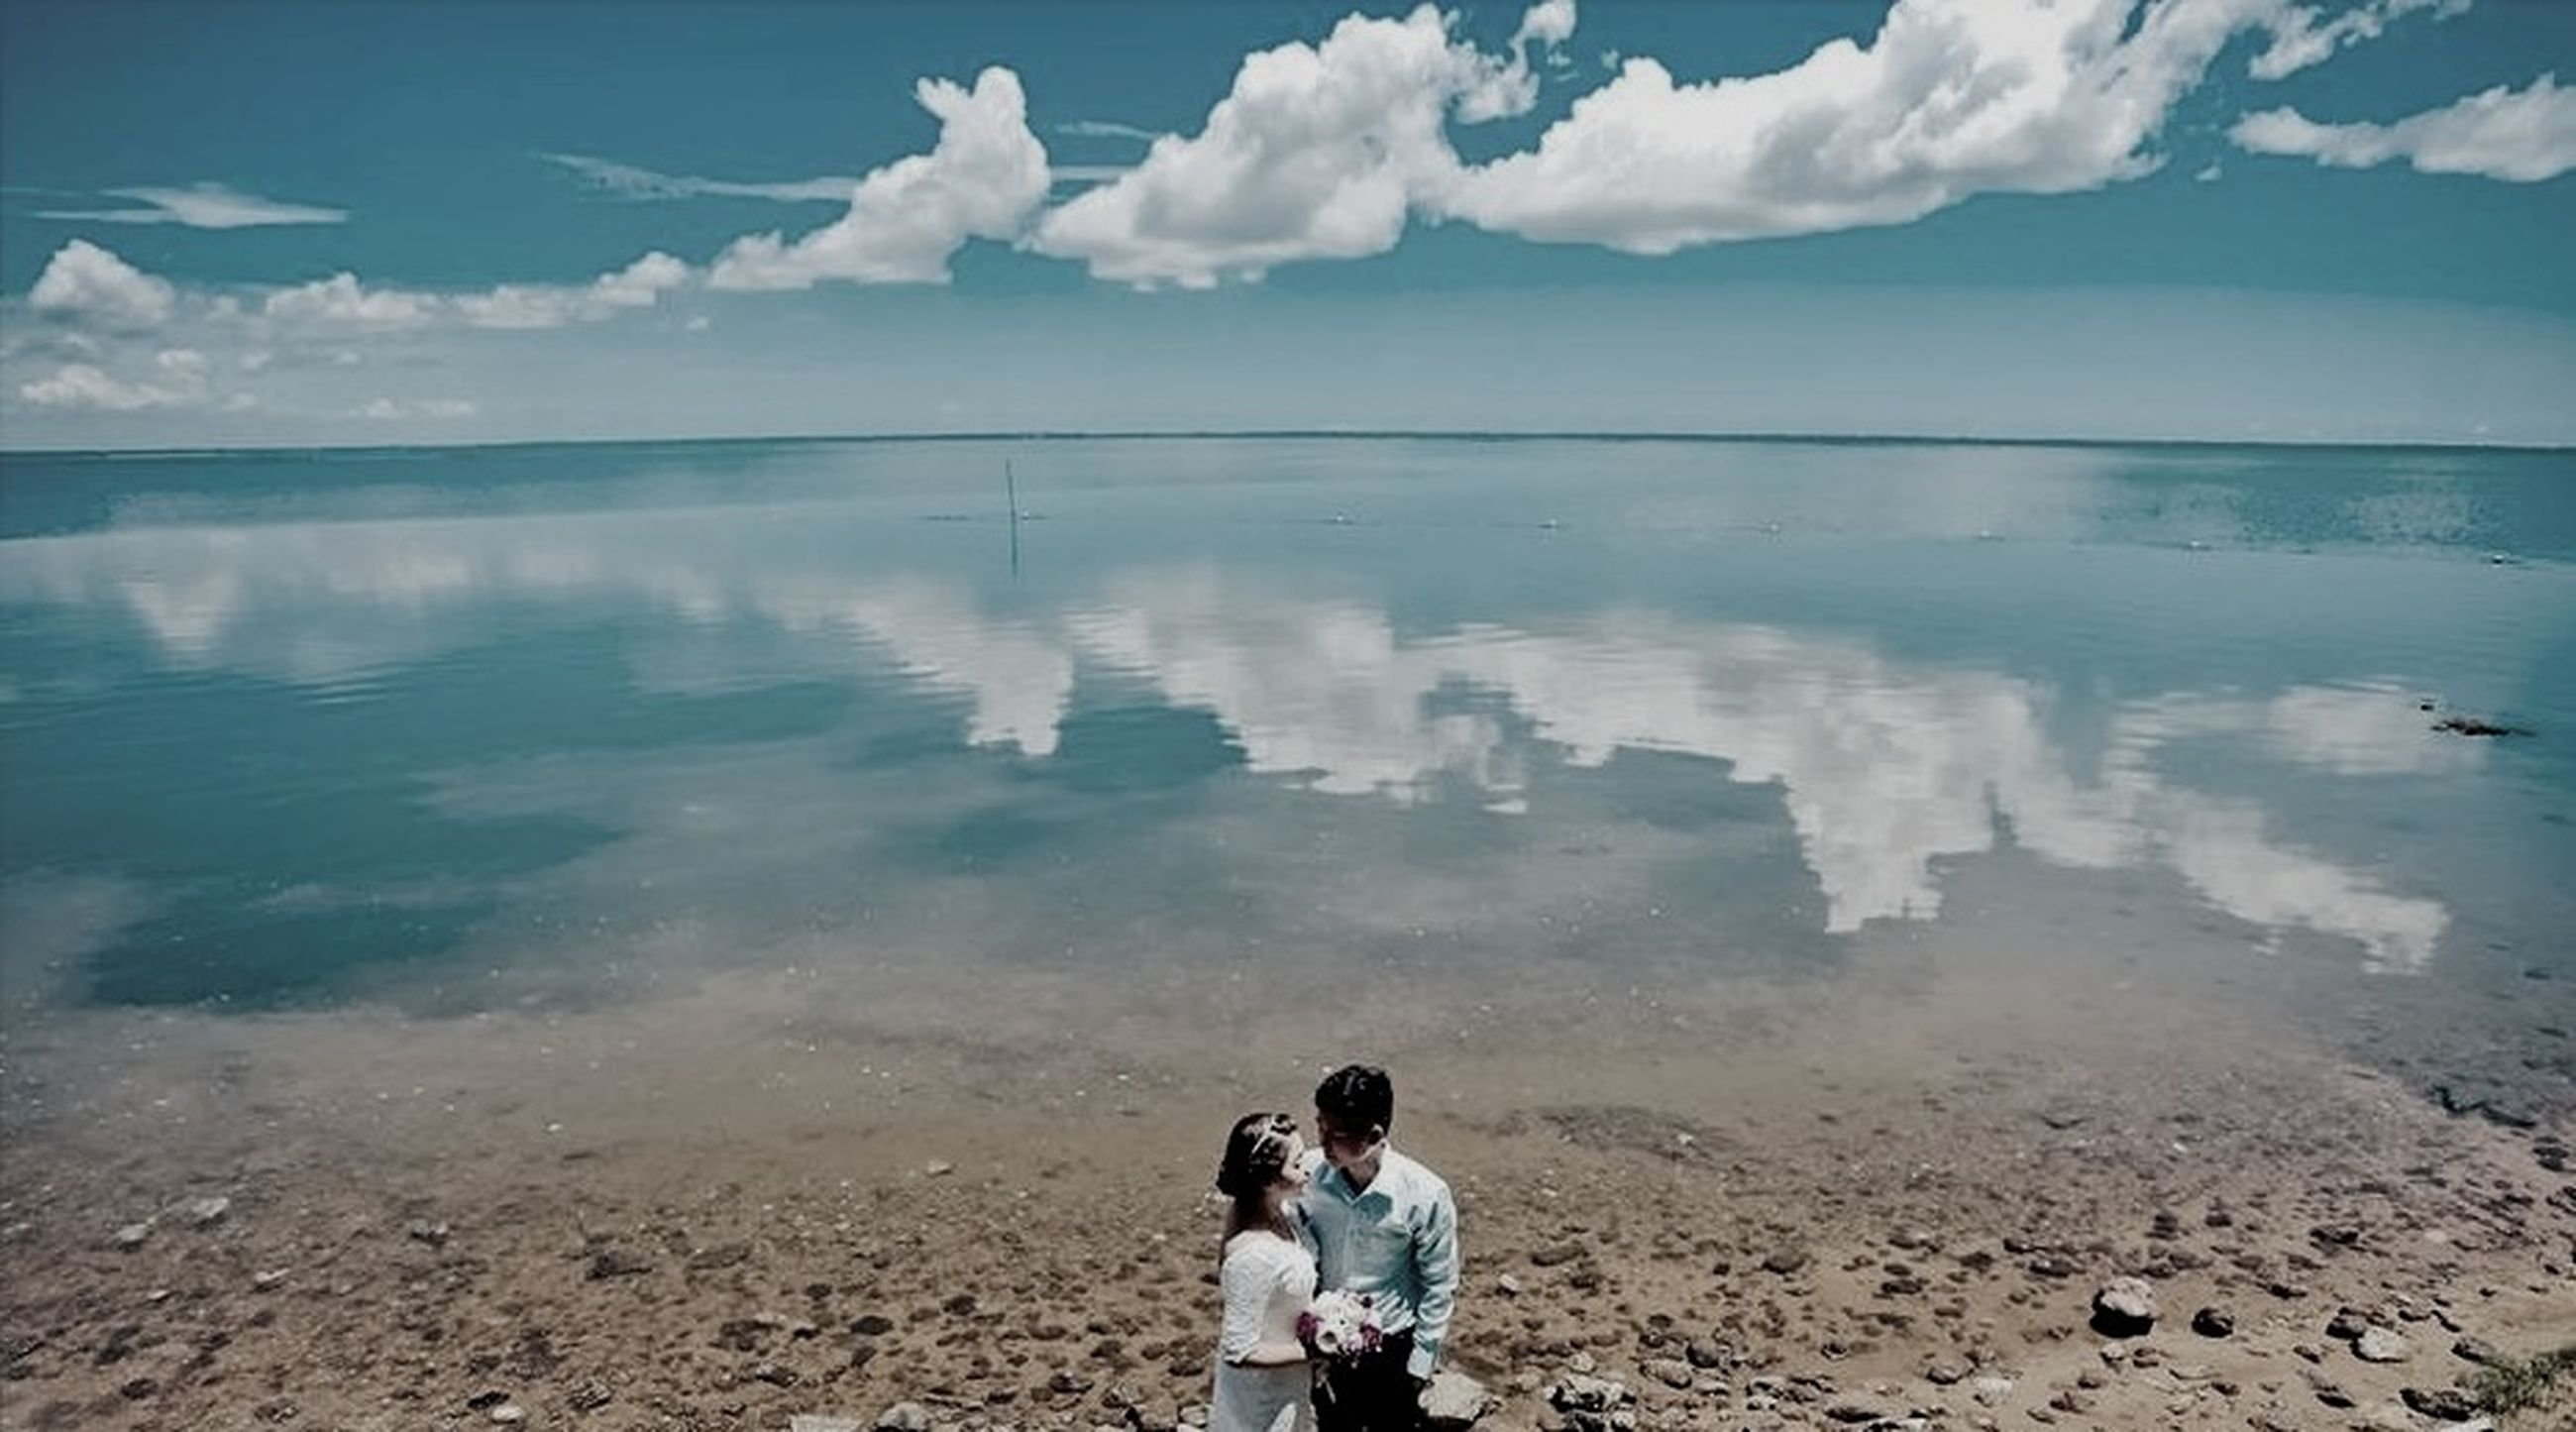 water, lifestyles, leisure activity, sea, sky, beach, shore, rear view, tranquility, men, standing, tranquil scene, scenics, horizon over water, nature, casual clothing, beauty in nature, vacations